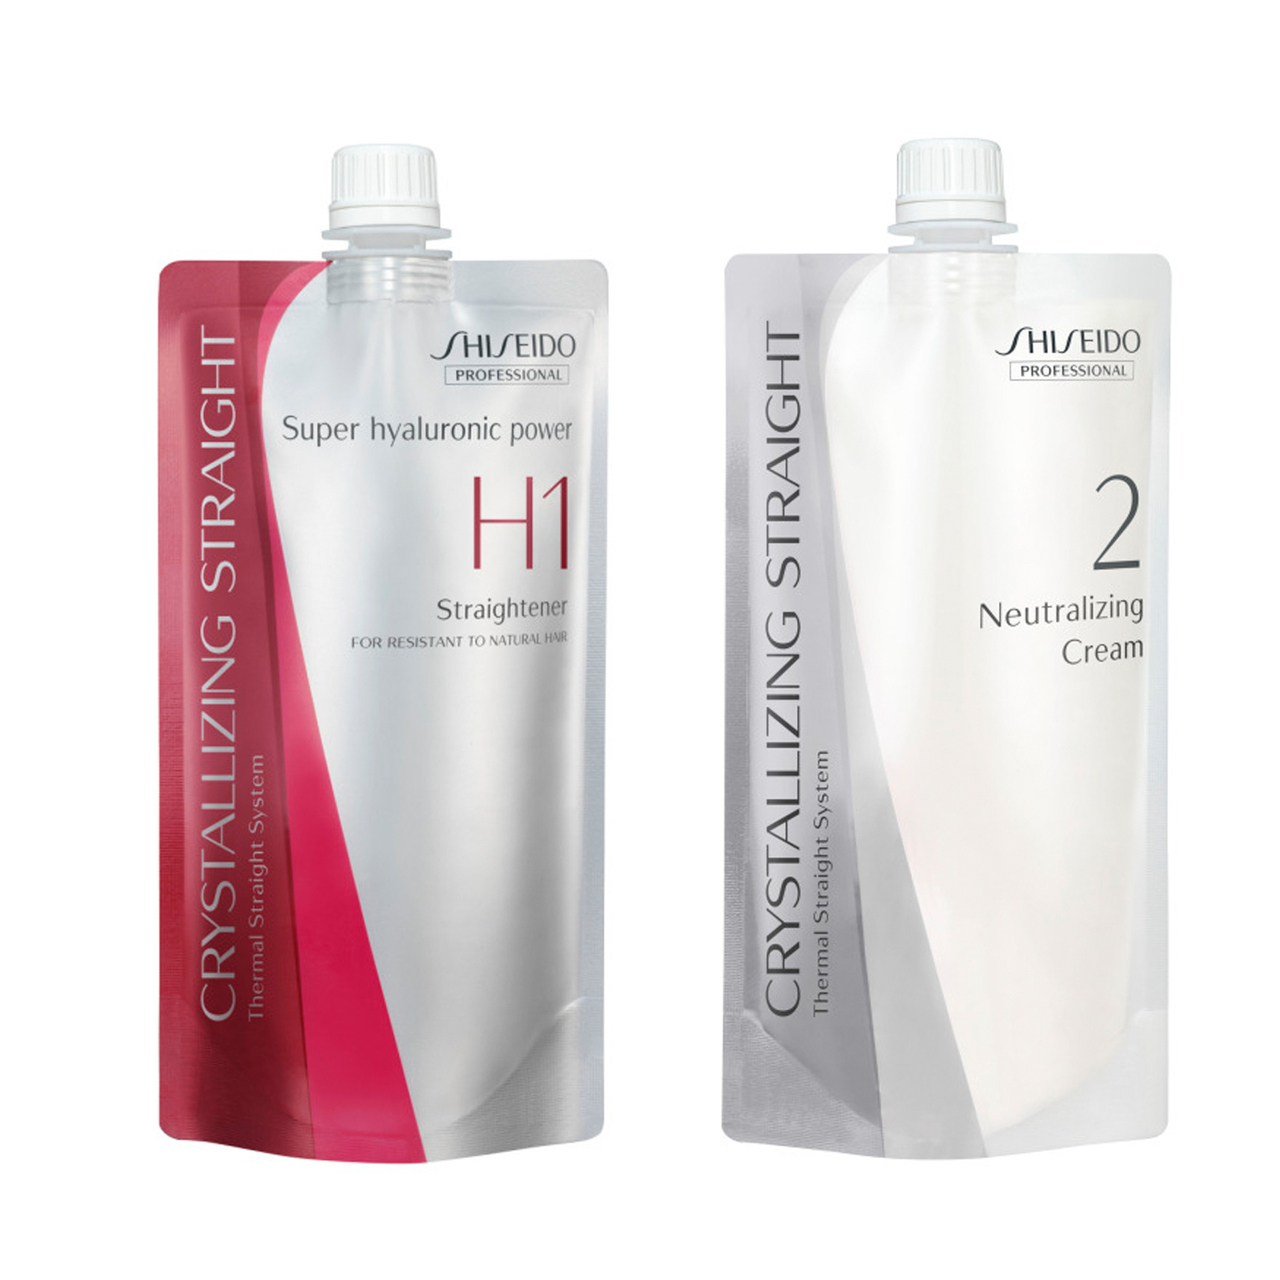 shiseido hair styling products lissage japonais shiseido crystallizing h1 h2 8323 | shiseido crystallizing straight h1 h2